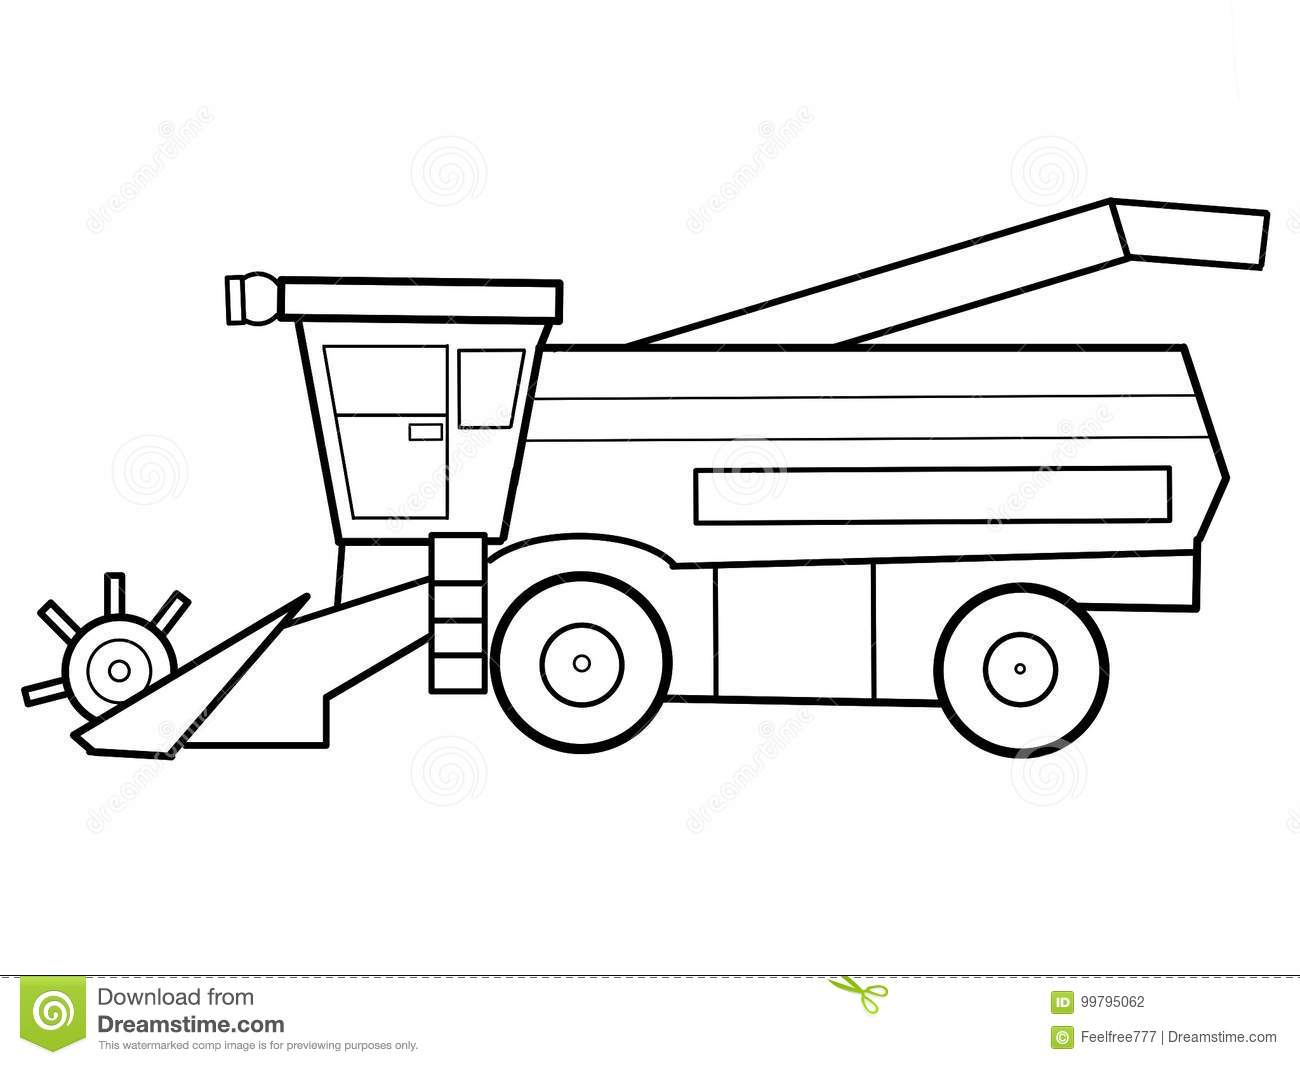 tractor kids educational coloring page picture you can see some geometrical elements perfect education